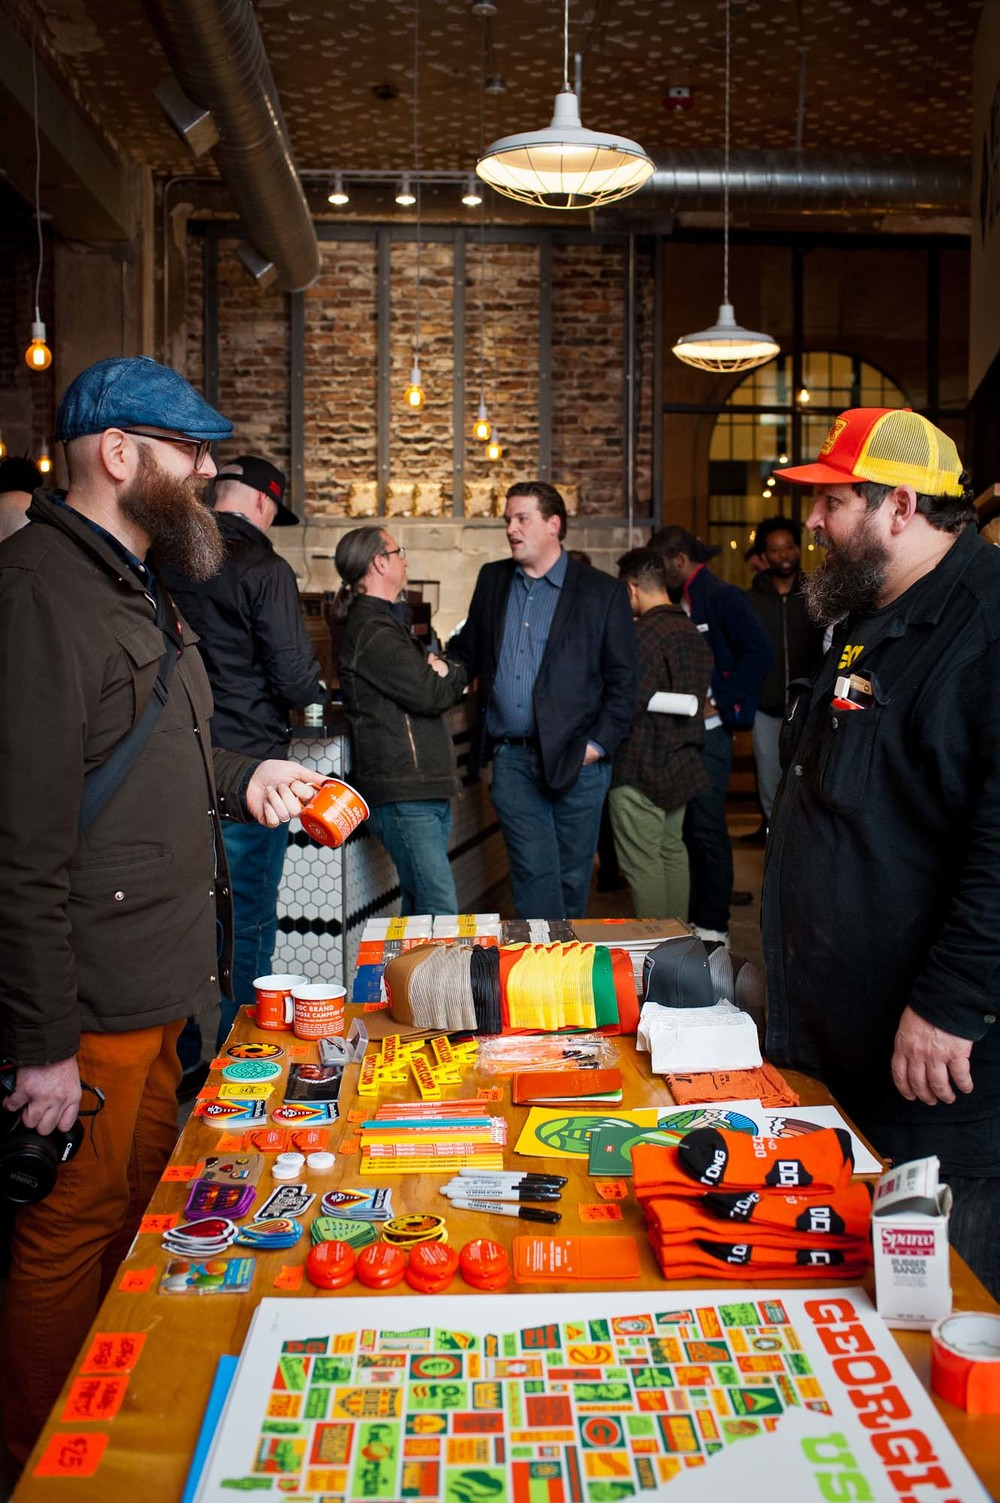 Aaron Draplin Event_01272016 (Web Ready)_066001.JPG